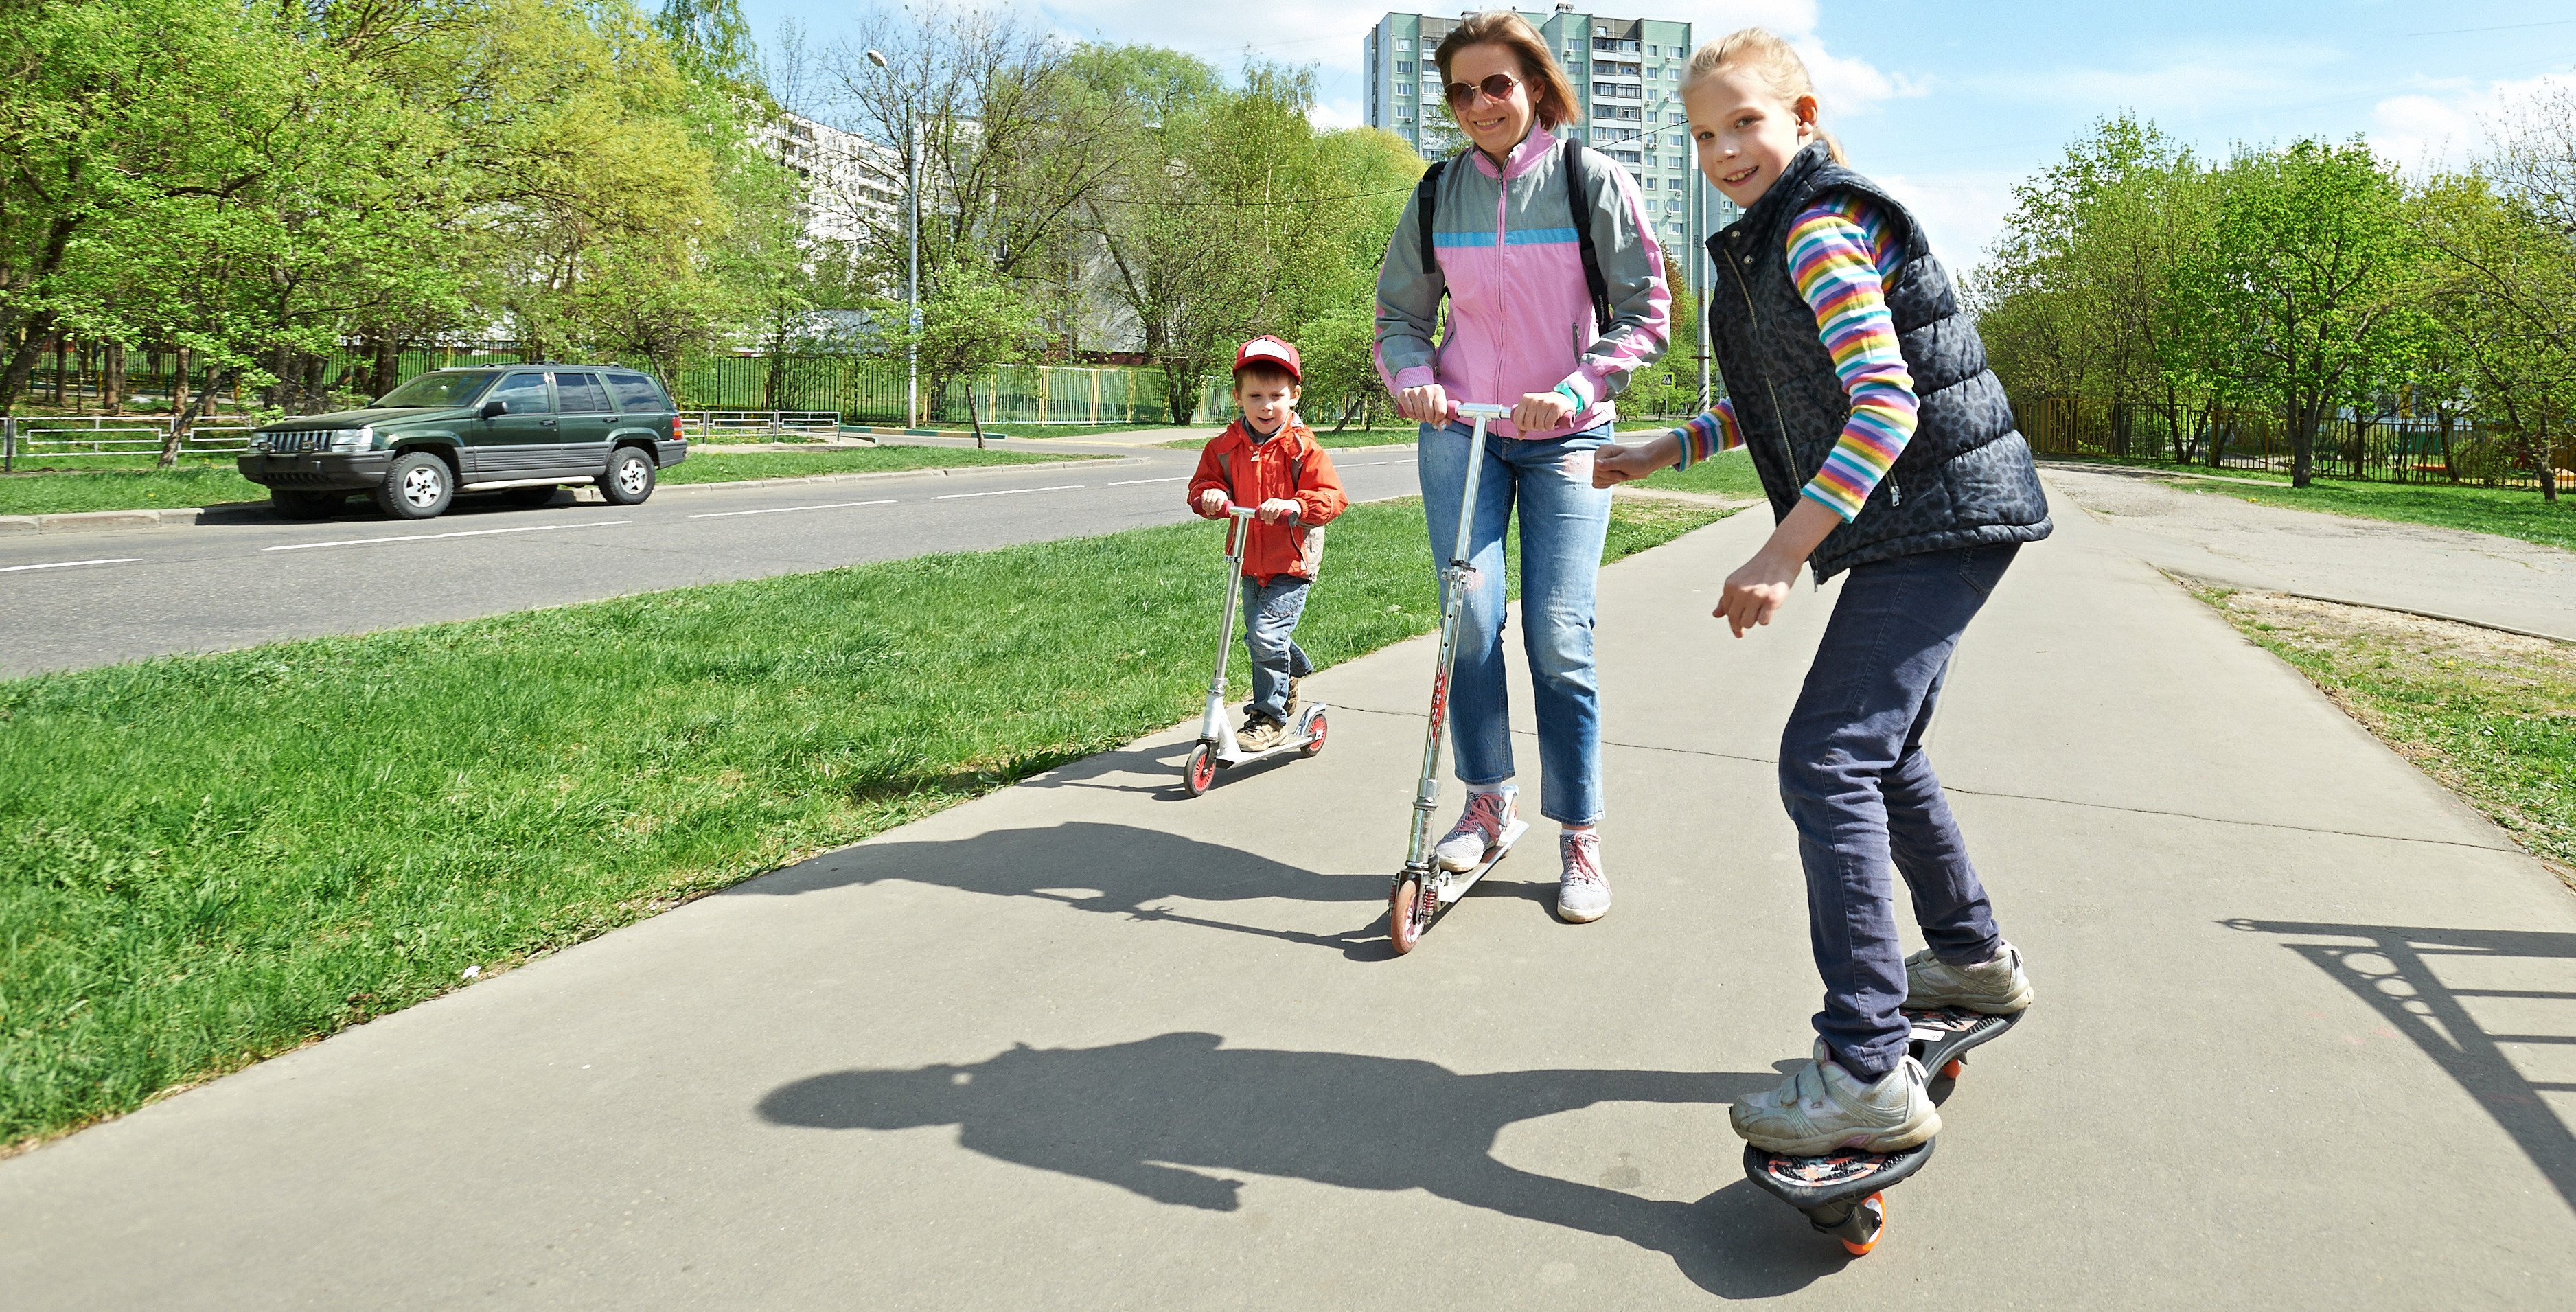 Family riding a skateboard and scooter in town